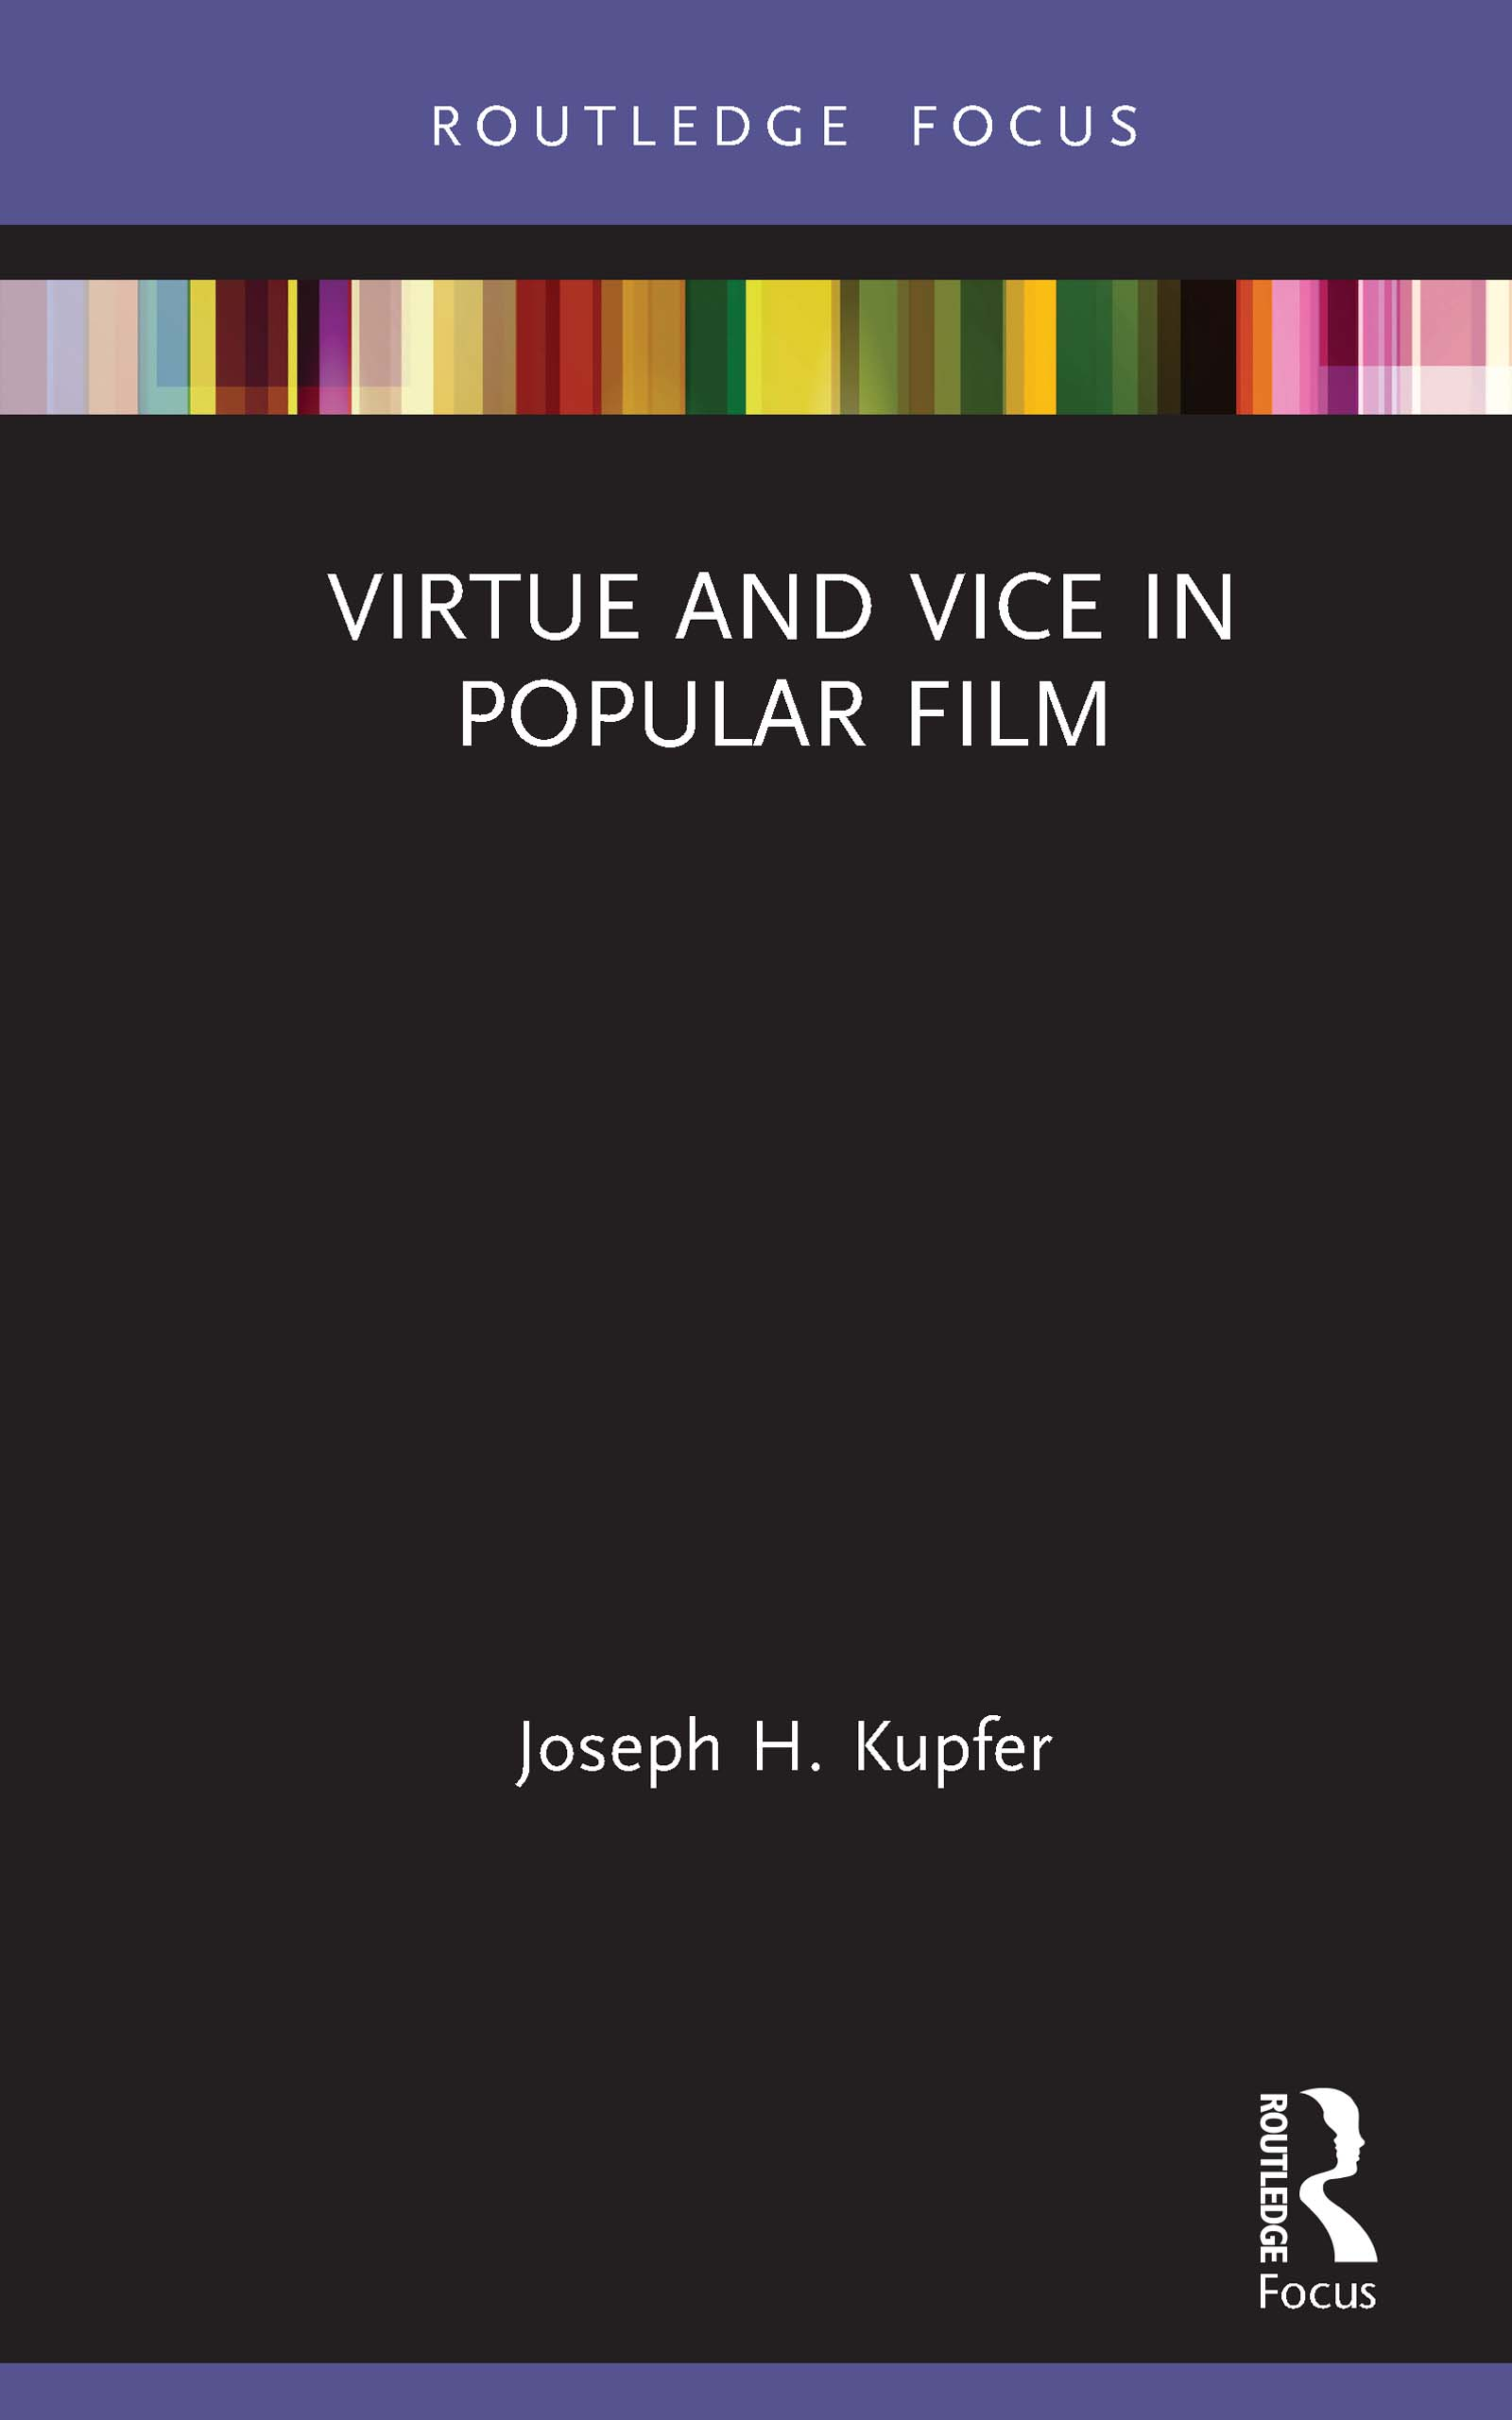 Virtue and Vice in Popular Film